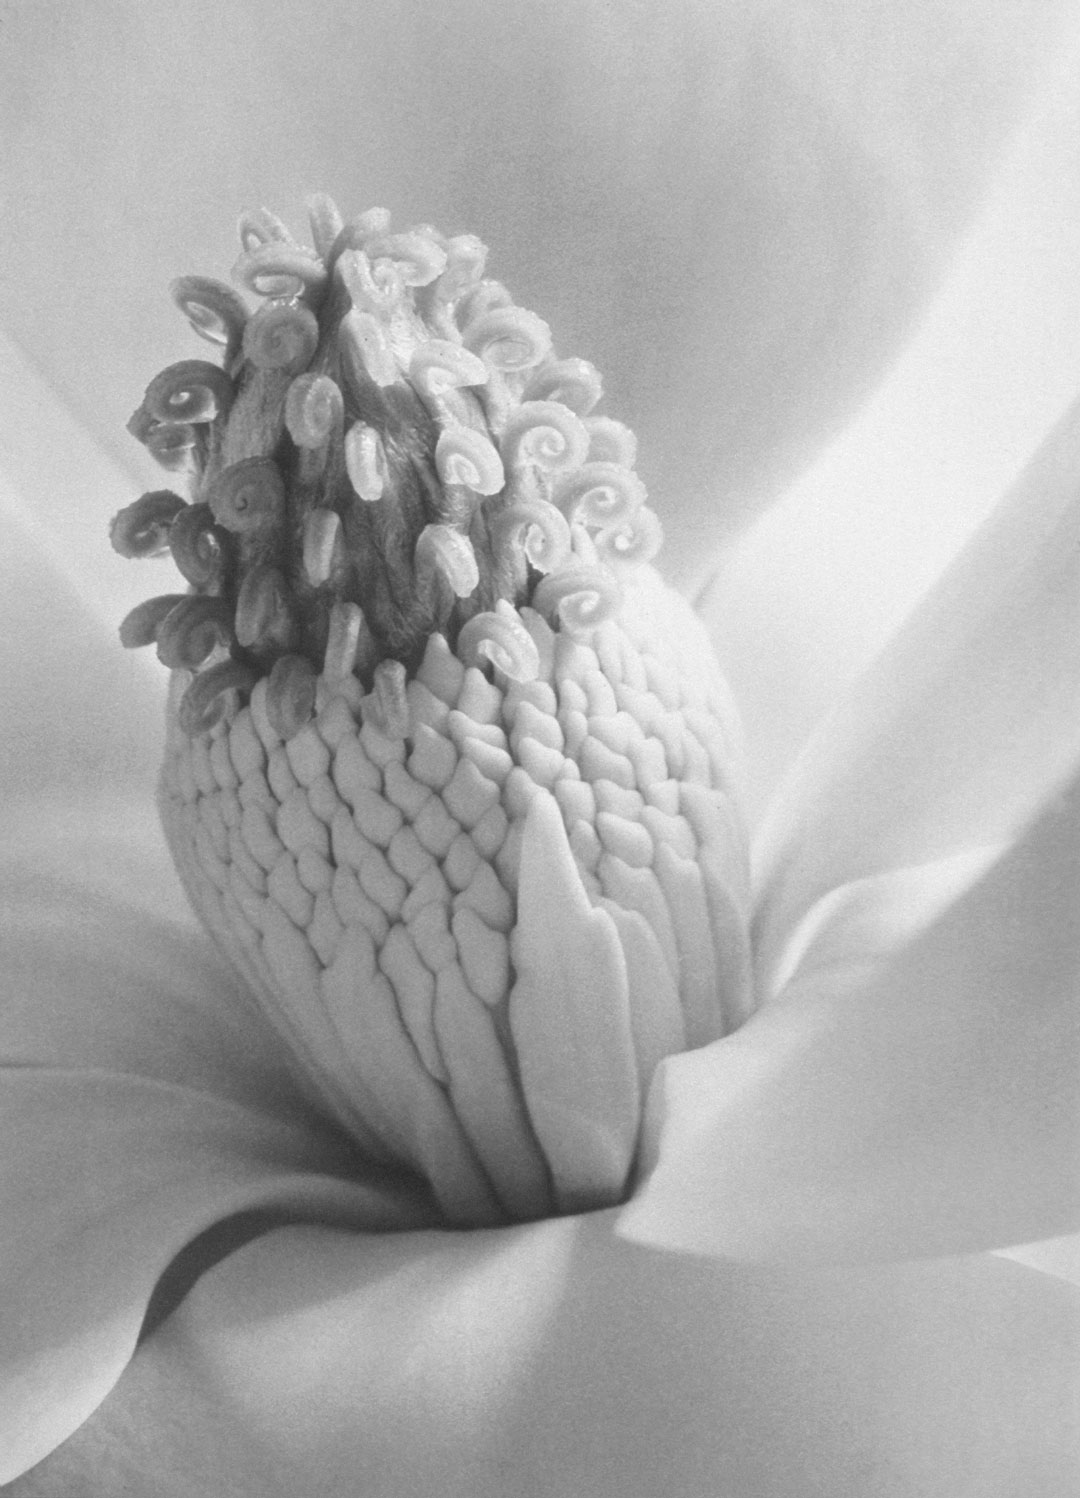 Object of the Week: Magnolia Blossom, Tower of Jewels